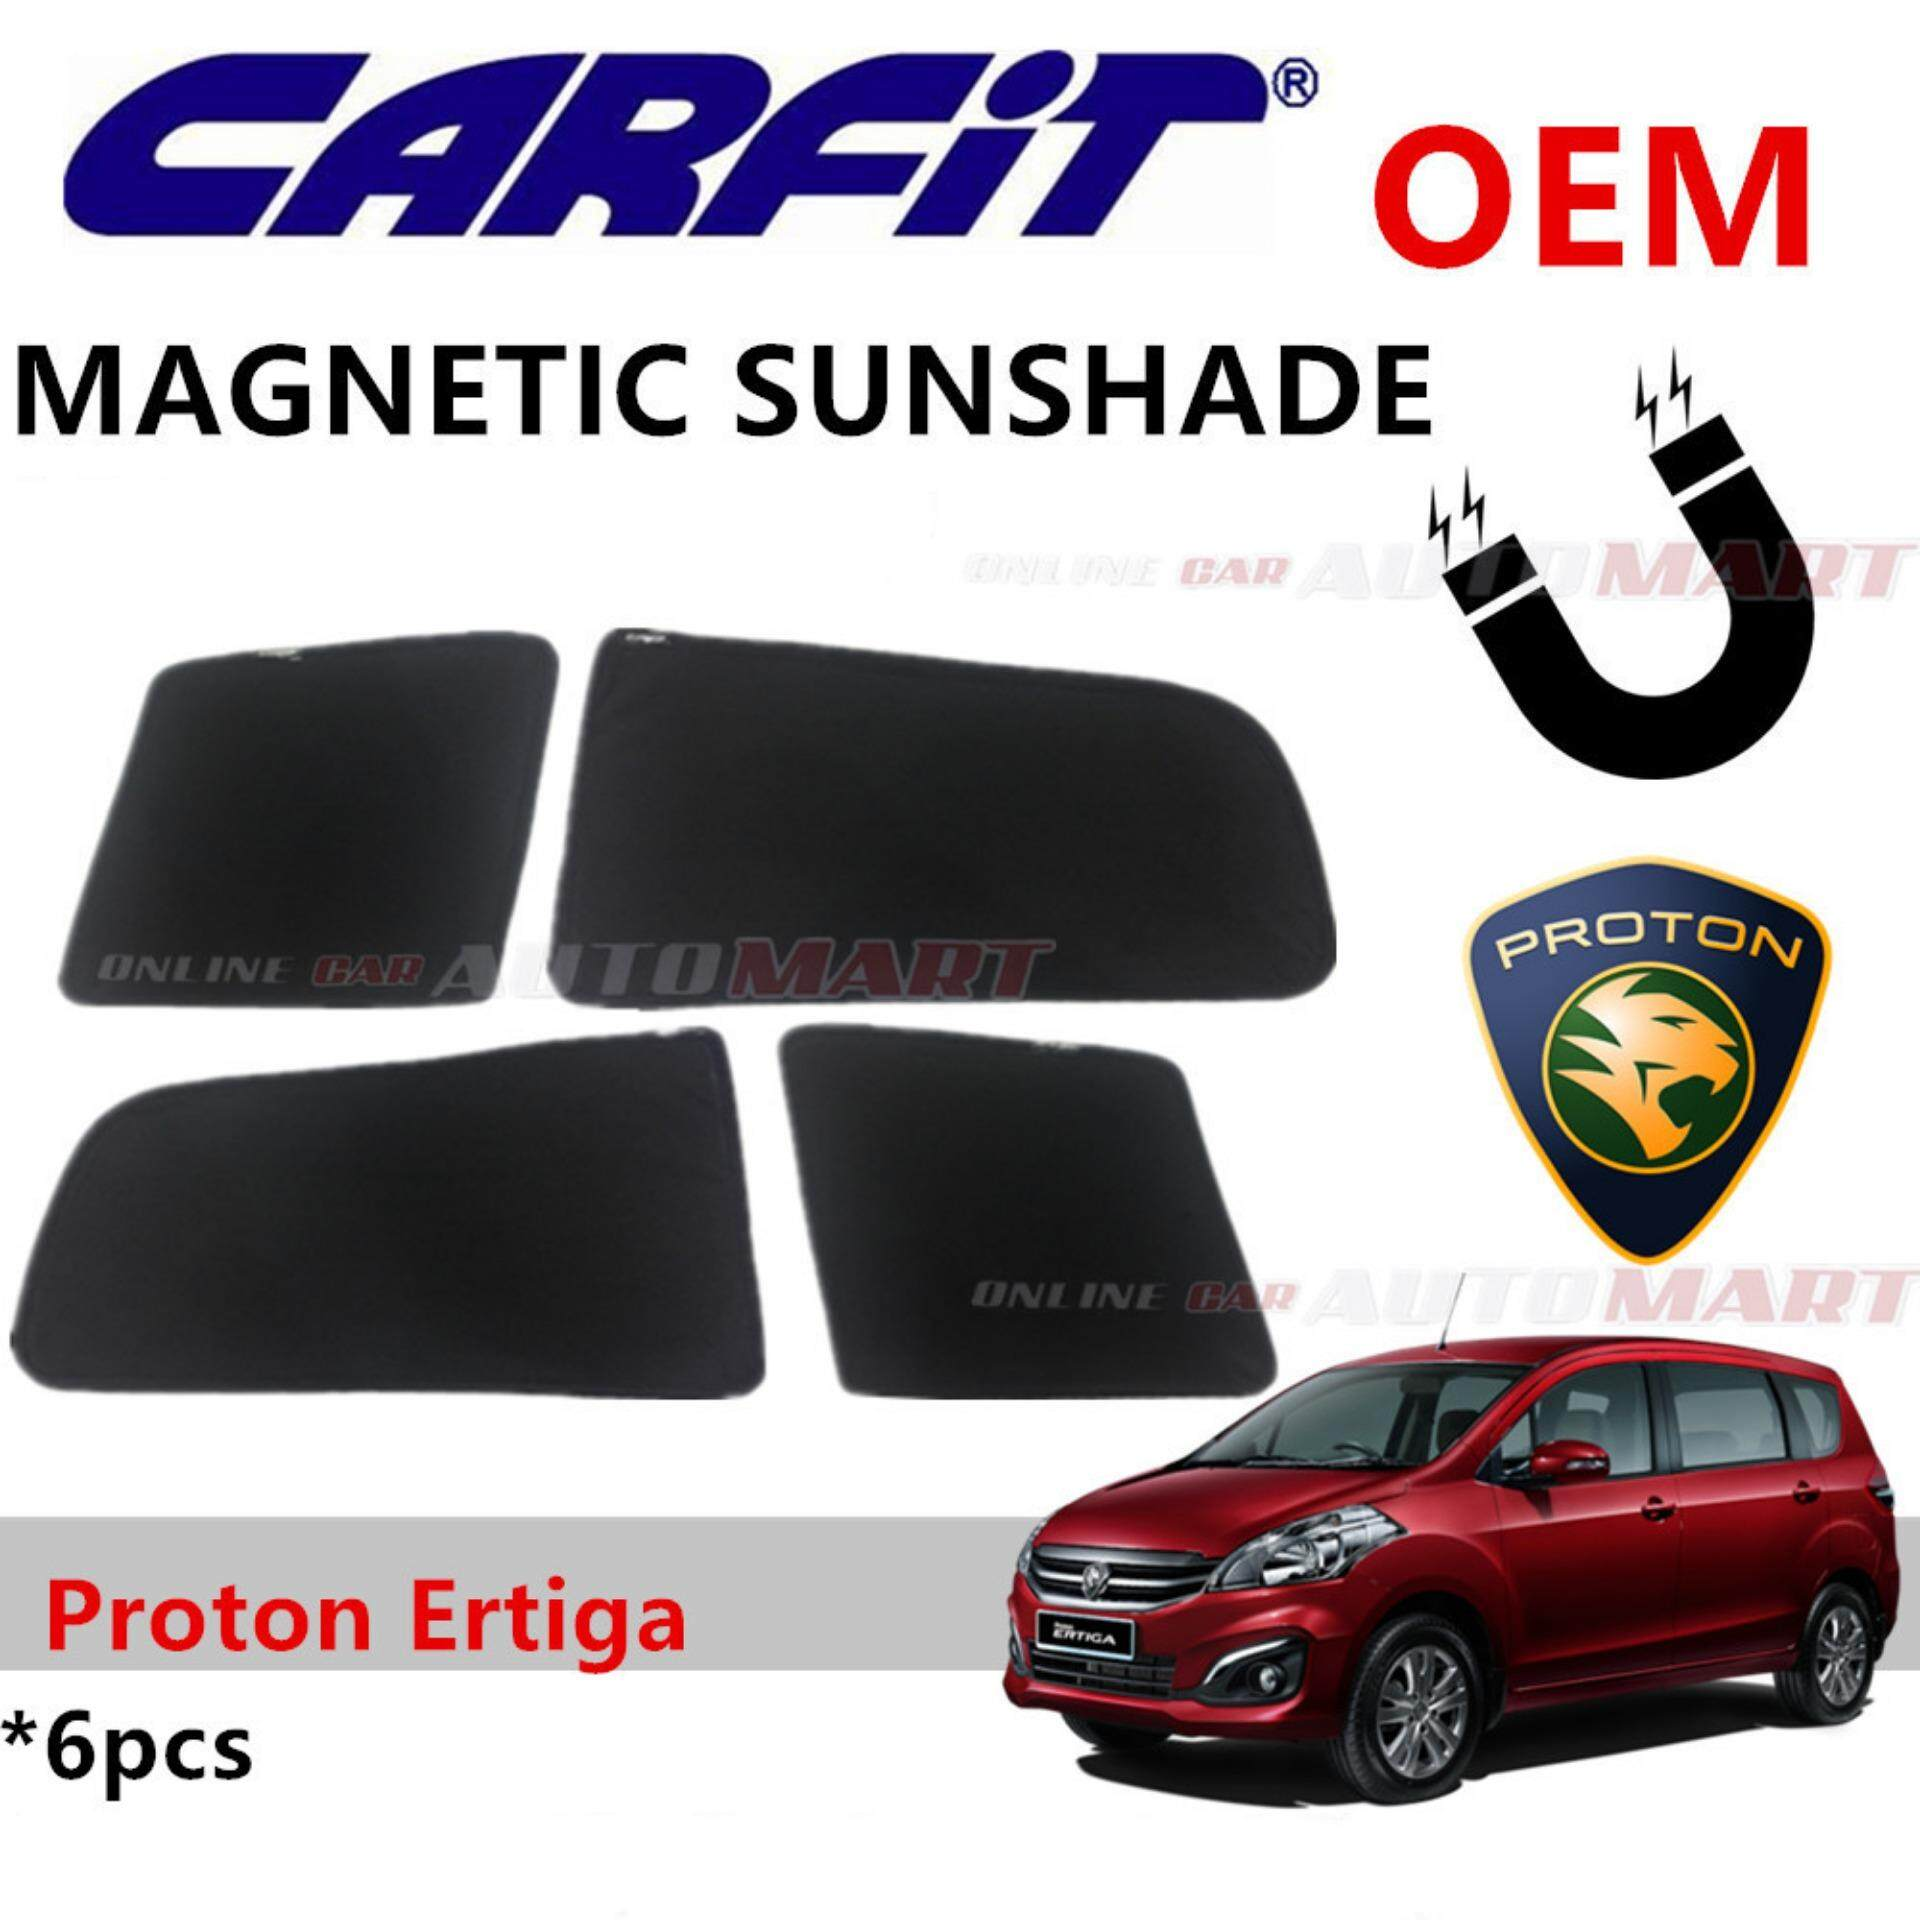 CARFIT OEM Magnetic Custom Fit Sunshade For Proton Ertiga (6pcs Sets)